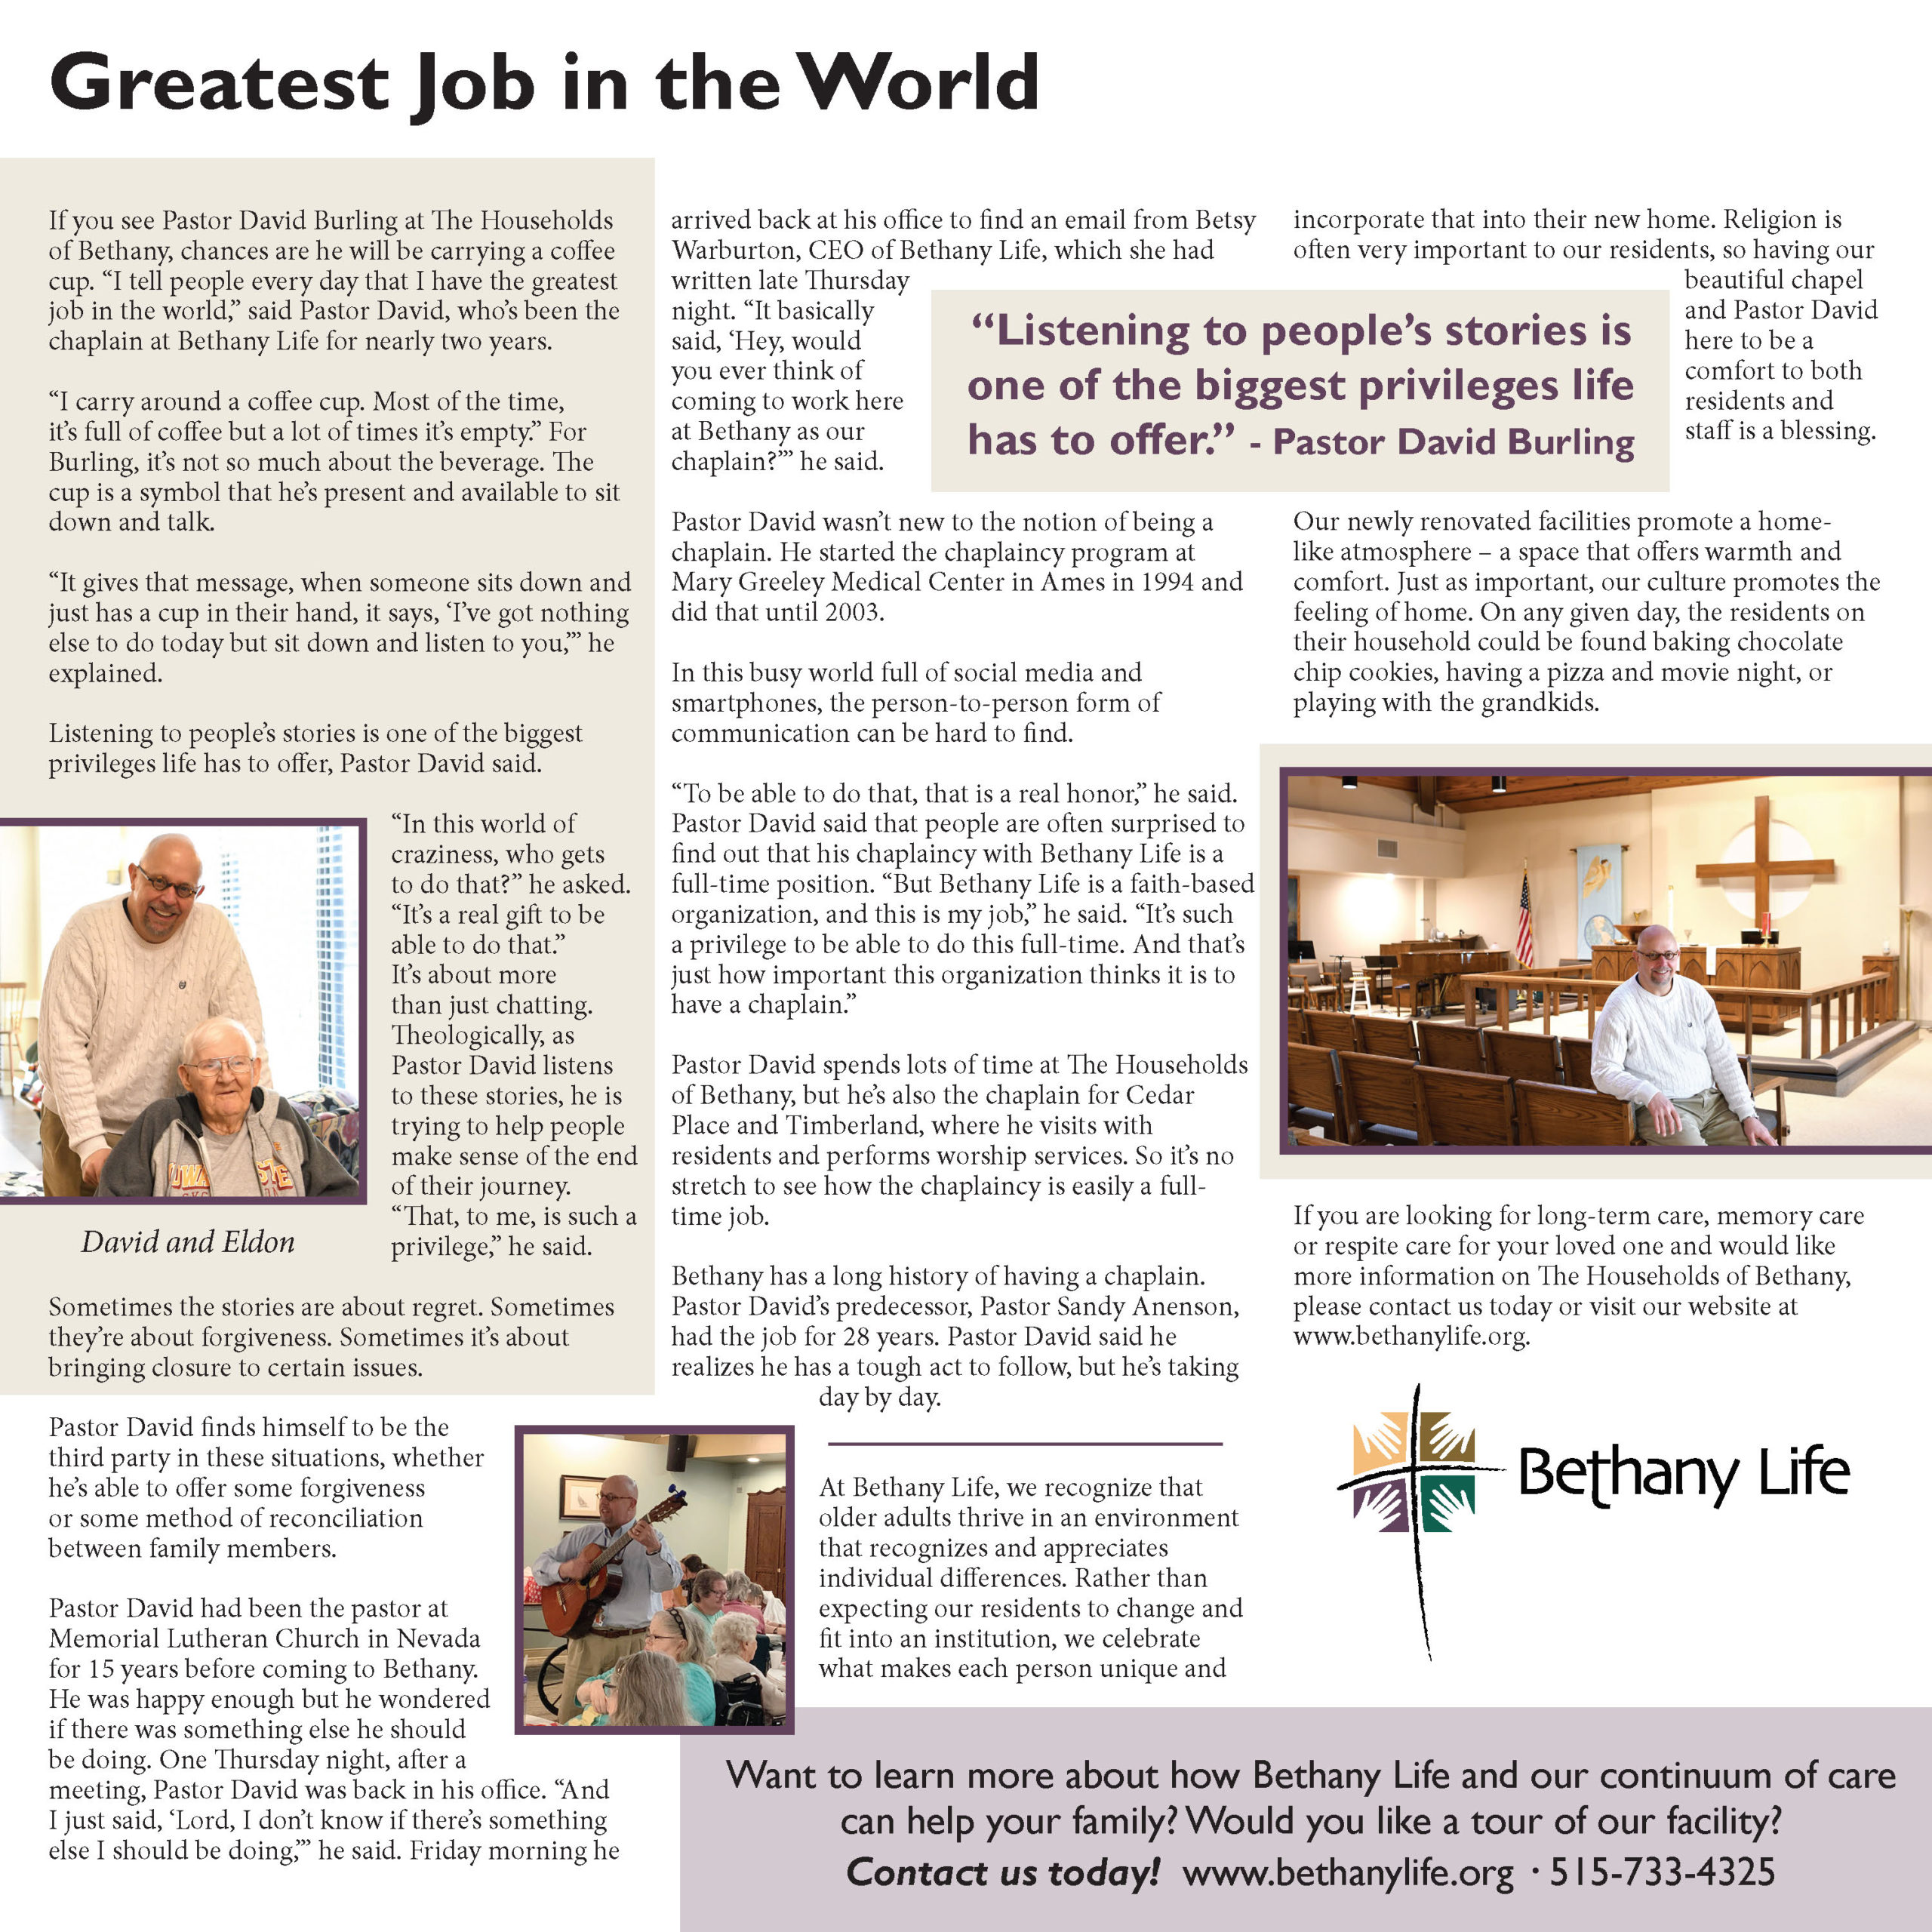 Pastor Dave's Story: Greatest Job in the World (Newsletter Image)